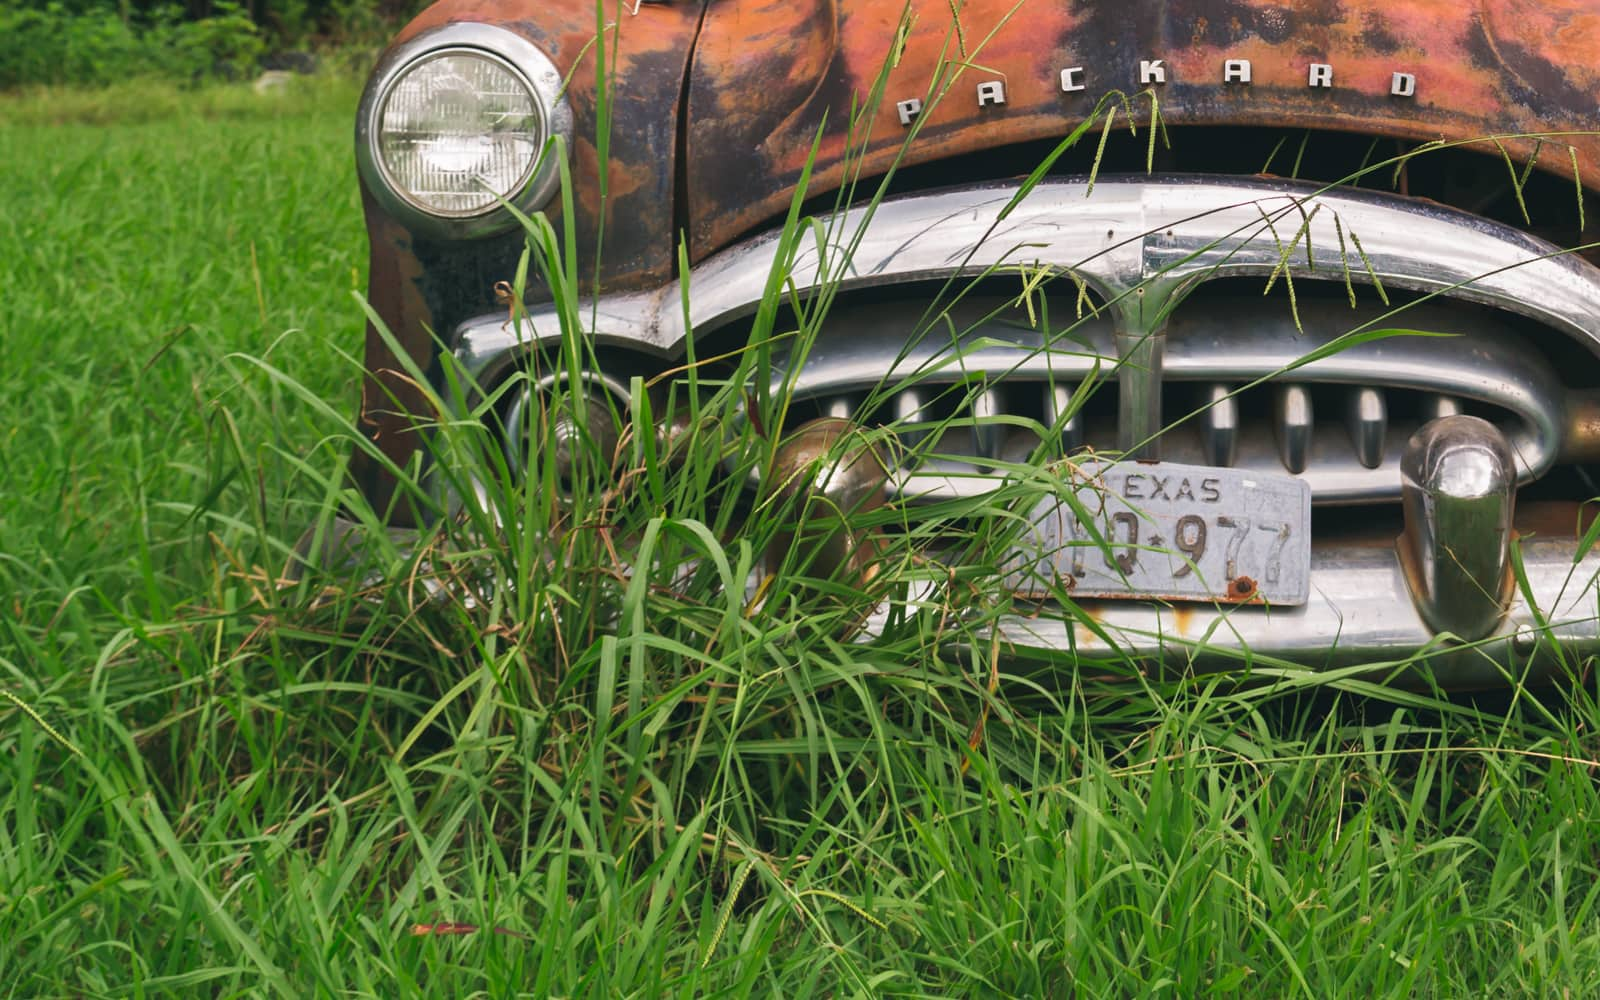 1952 Packard Patrician 400 Abandoned And Deteriorated In A Texas Field